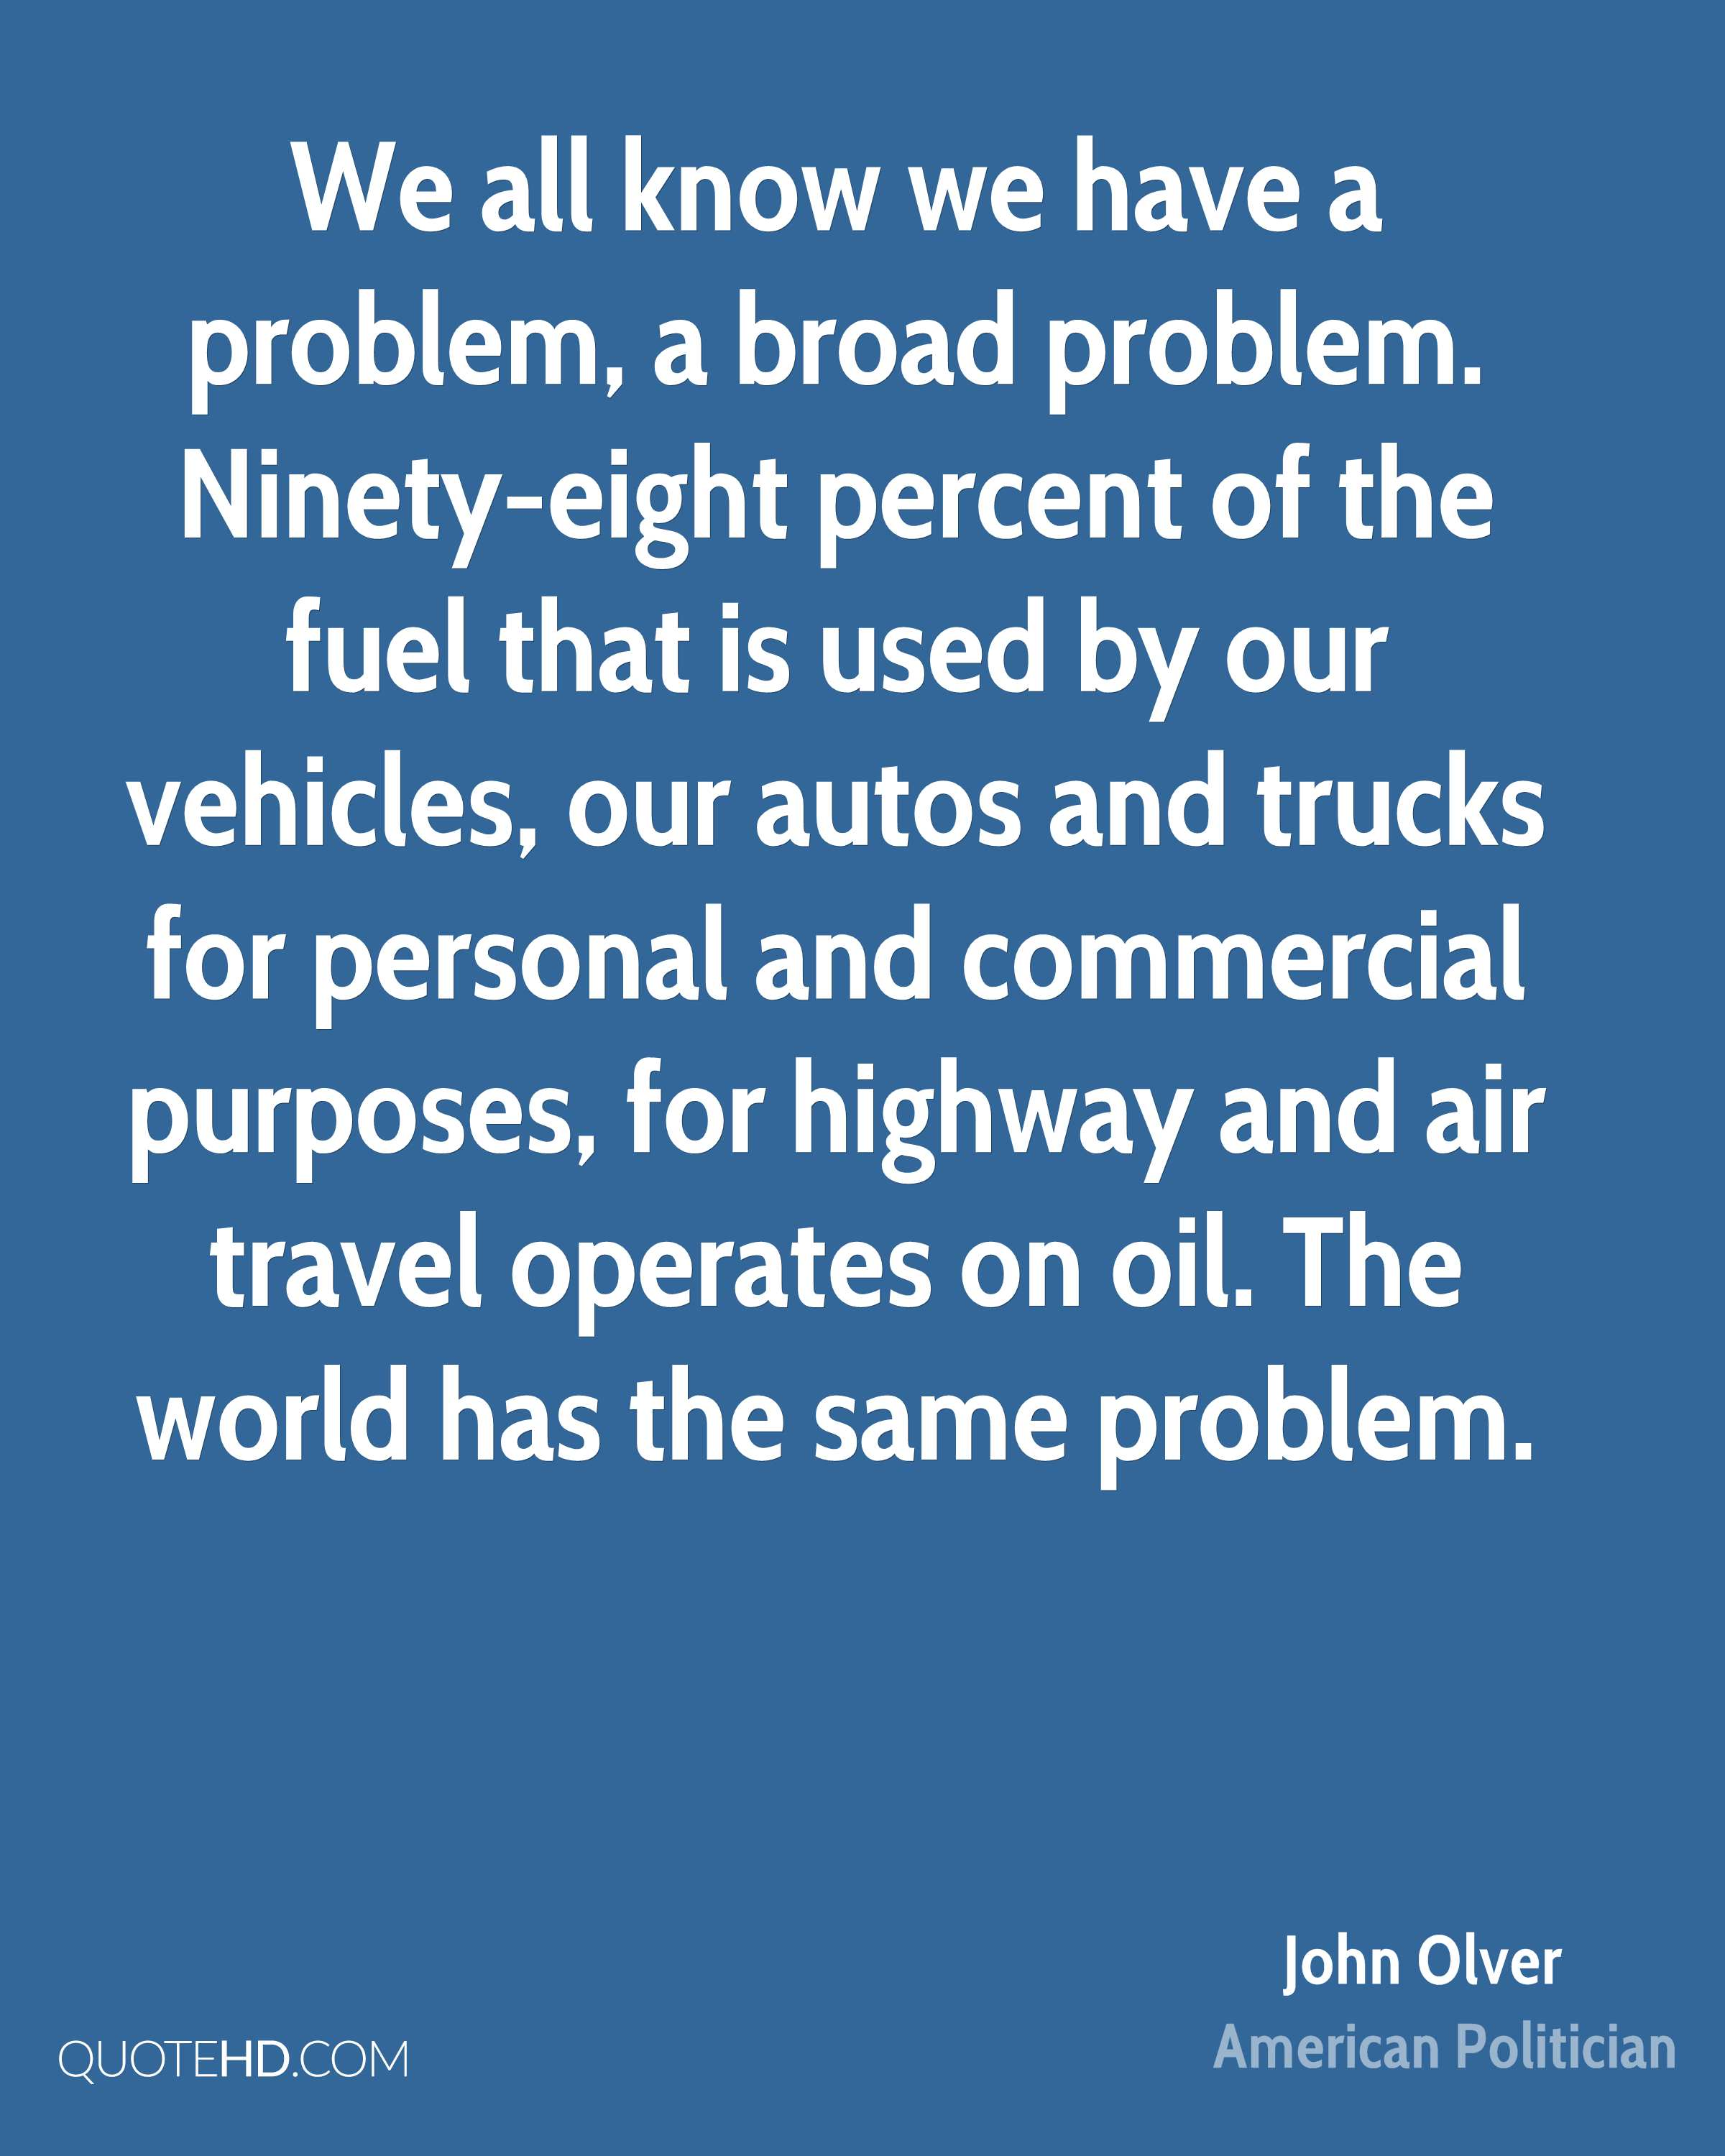 We all know we have a problem, a broad problem. Ninety-eight percent of the fuel that is used by our vehicles, our autos and trucks for personal and commercial purposes, for highway and air travel operates on oil. The world has the same problem.